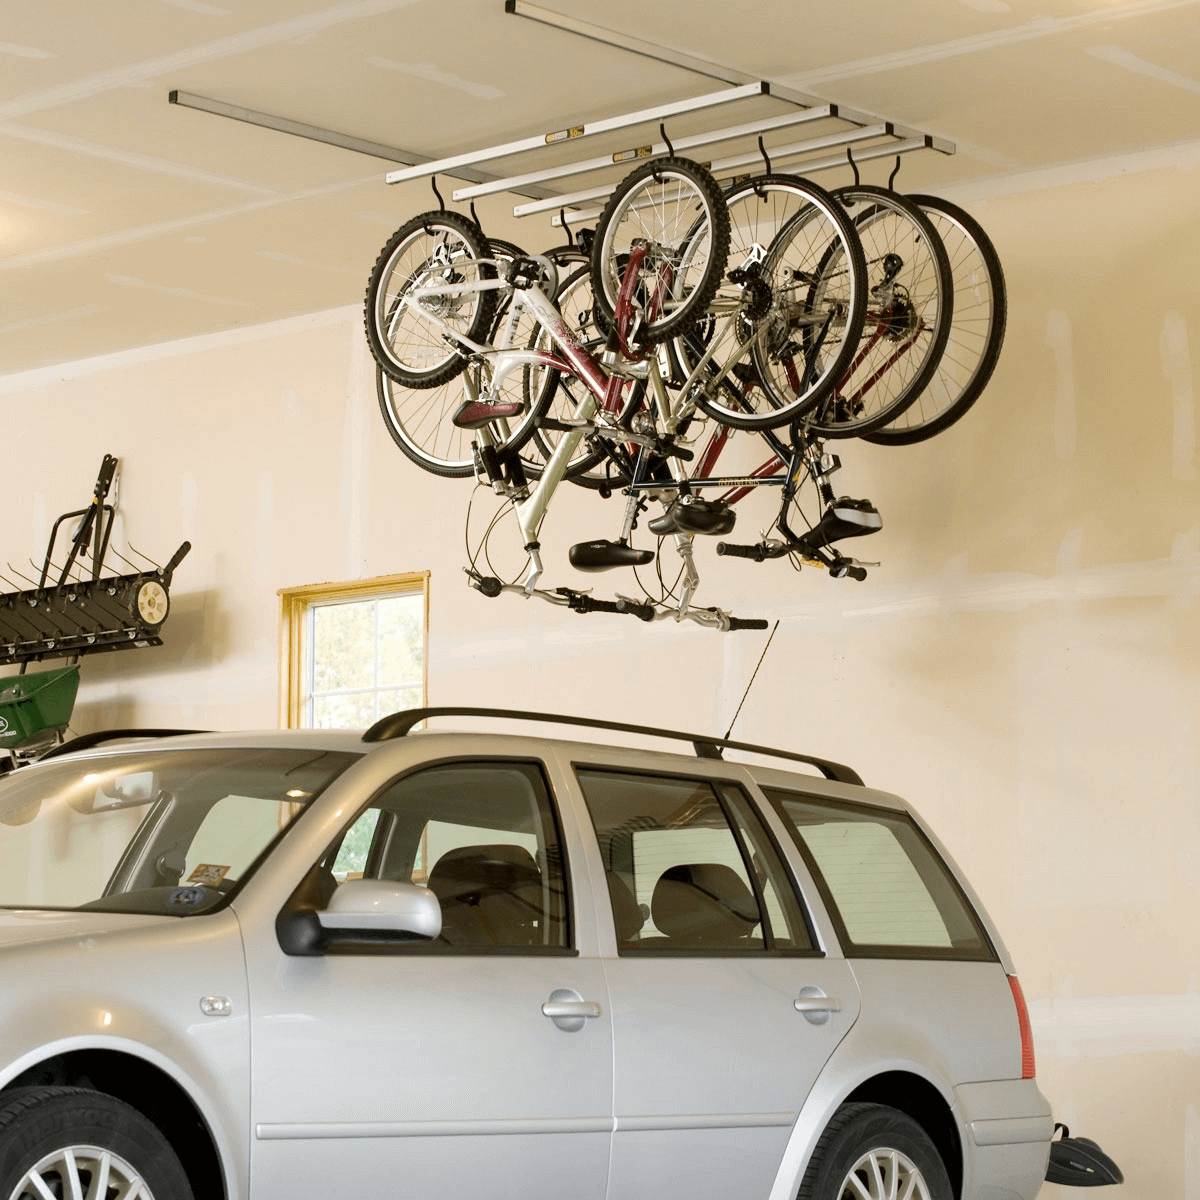 CEILING HOOK STORAGE IDEAS FOR BIKE MAKEOVER IDEAS